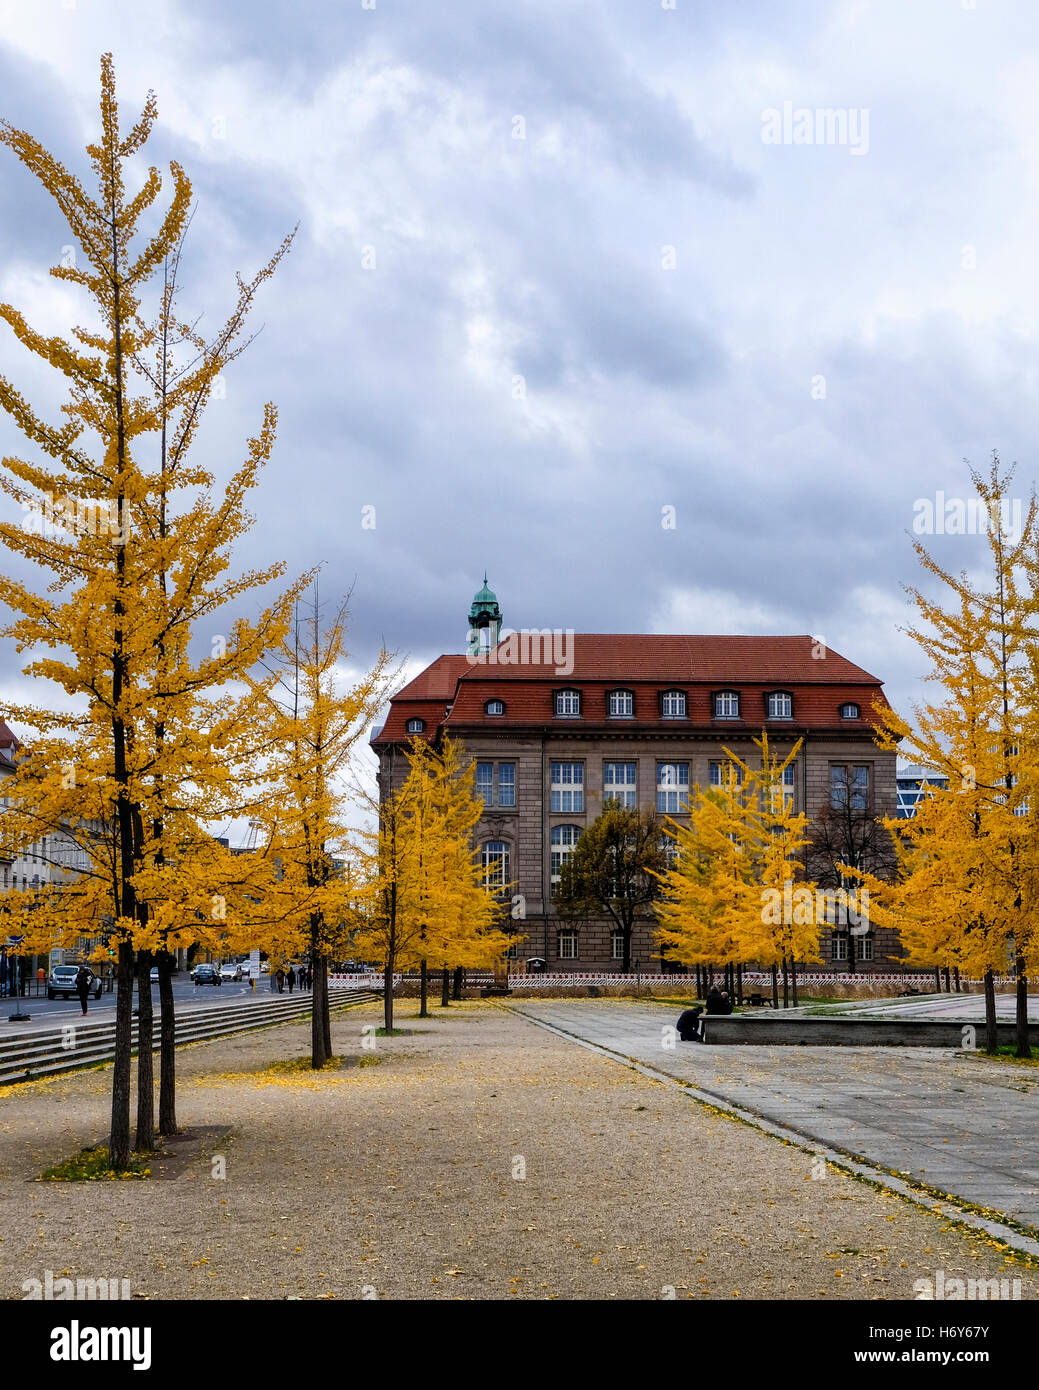 Invalidenpark, Berlin. Federal Ministry for Economic Affairs and Energy building exterior with golden gingko trees - Stock Image